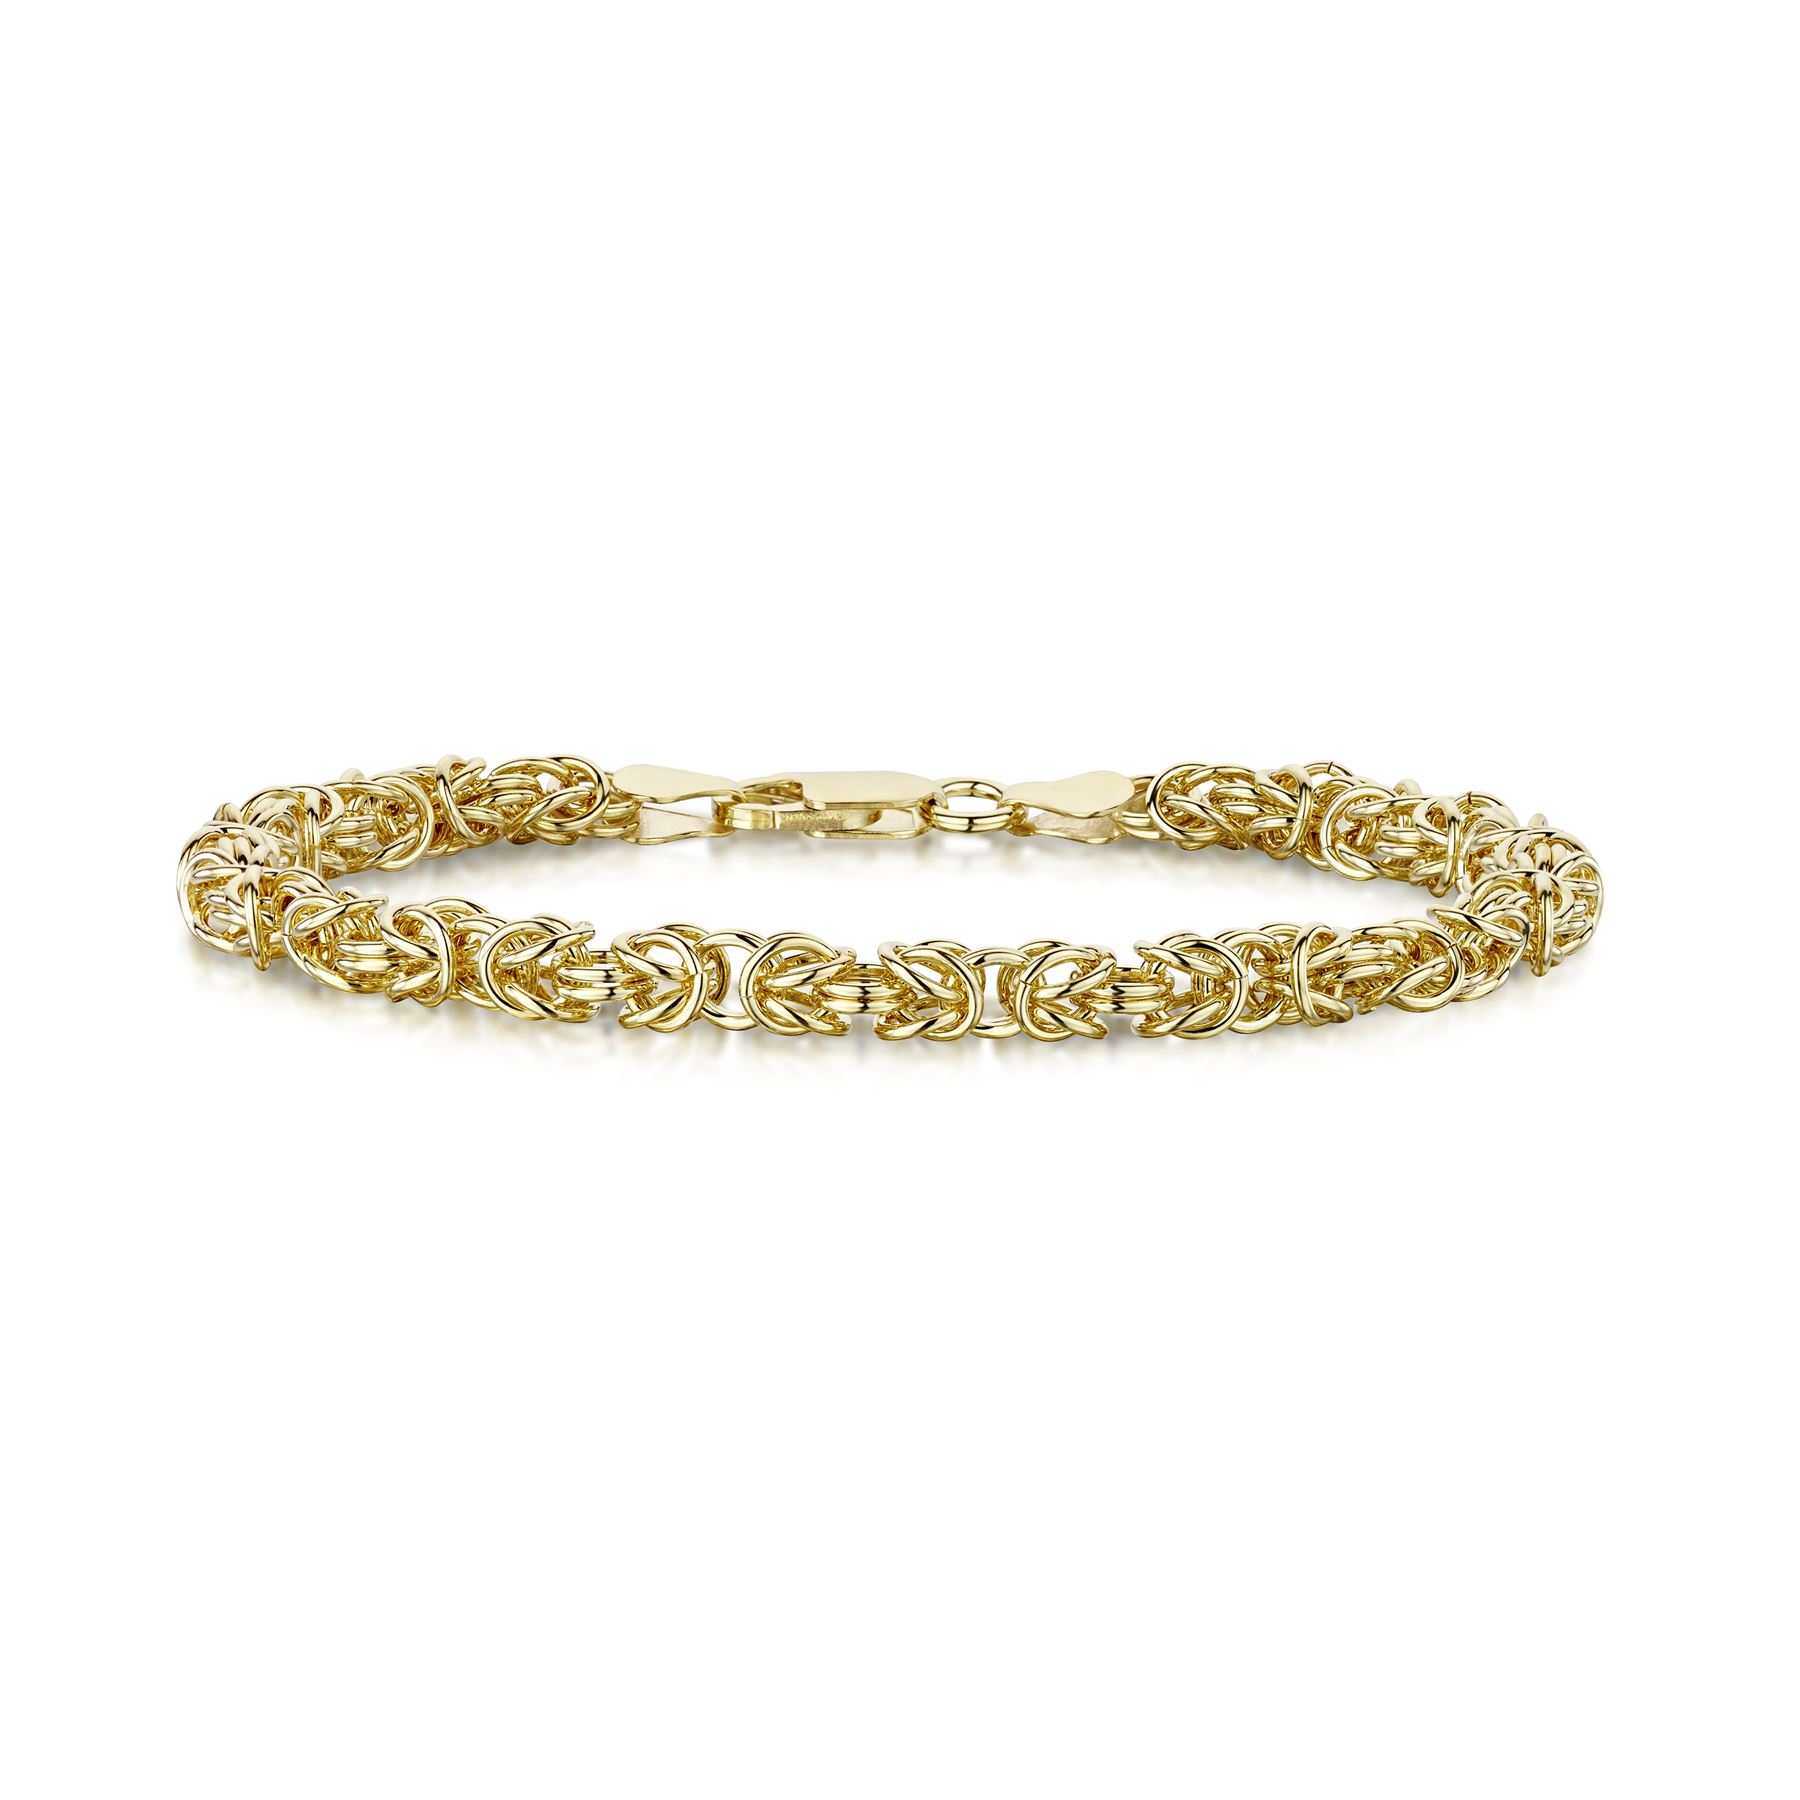 Amberta-Genuine-Real-925-Sterling-Silver-Chain-Bracelet-for-Women-from-Italy miniature 12